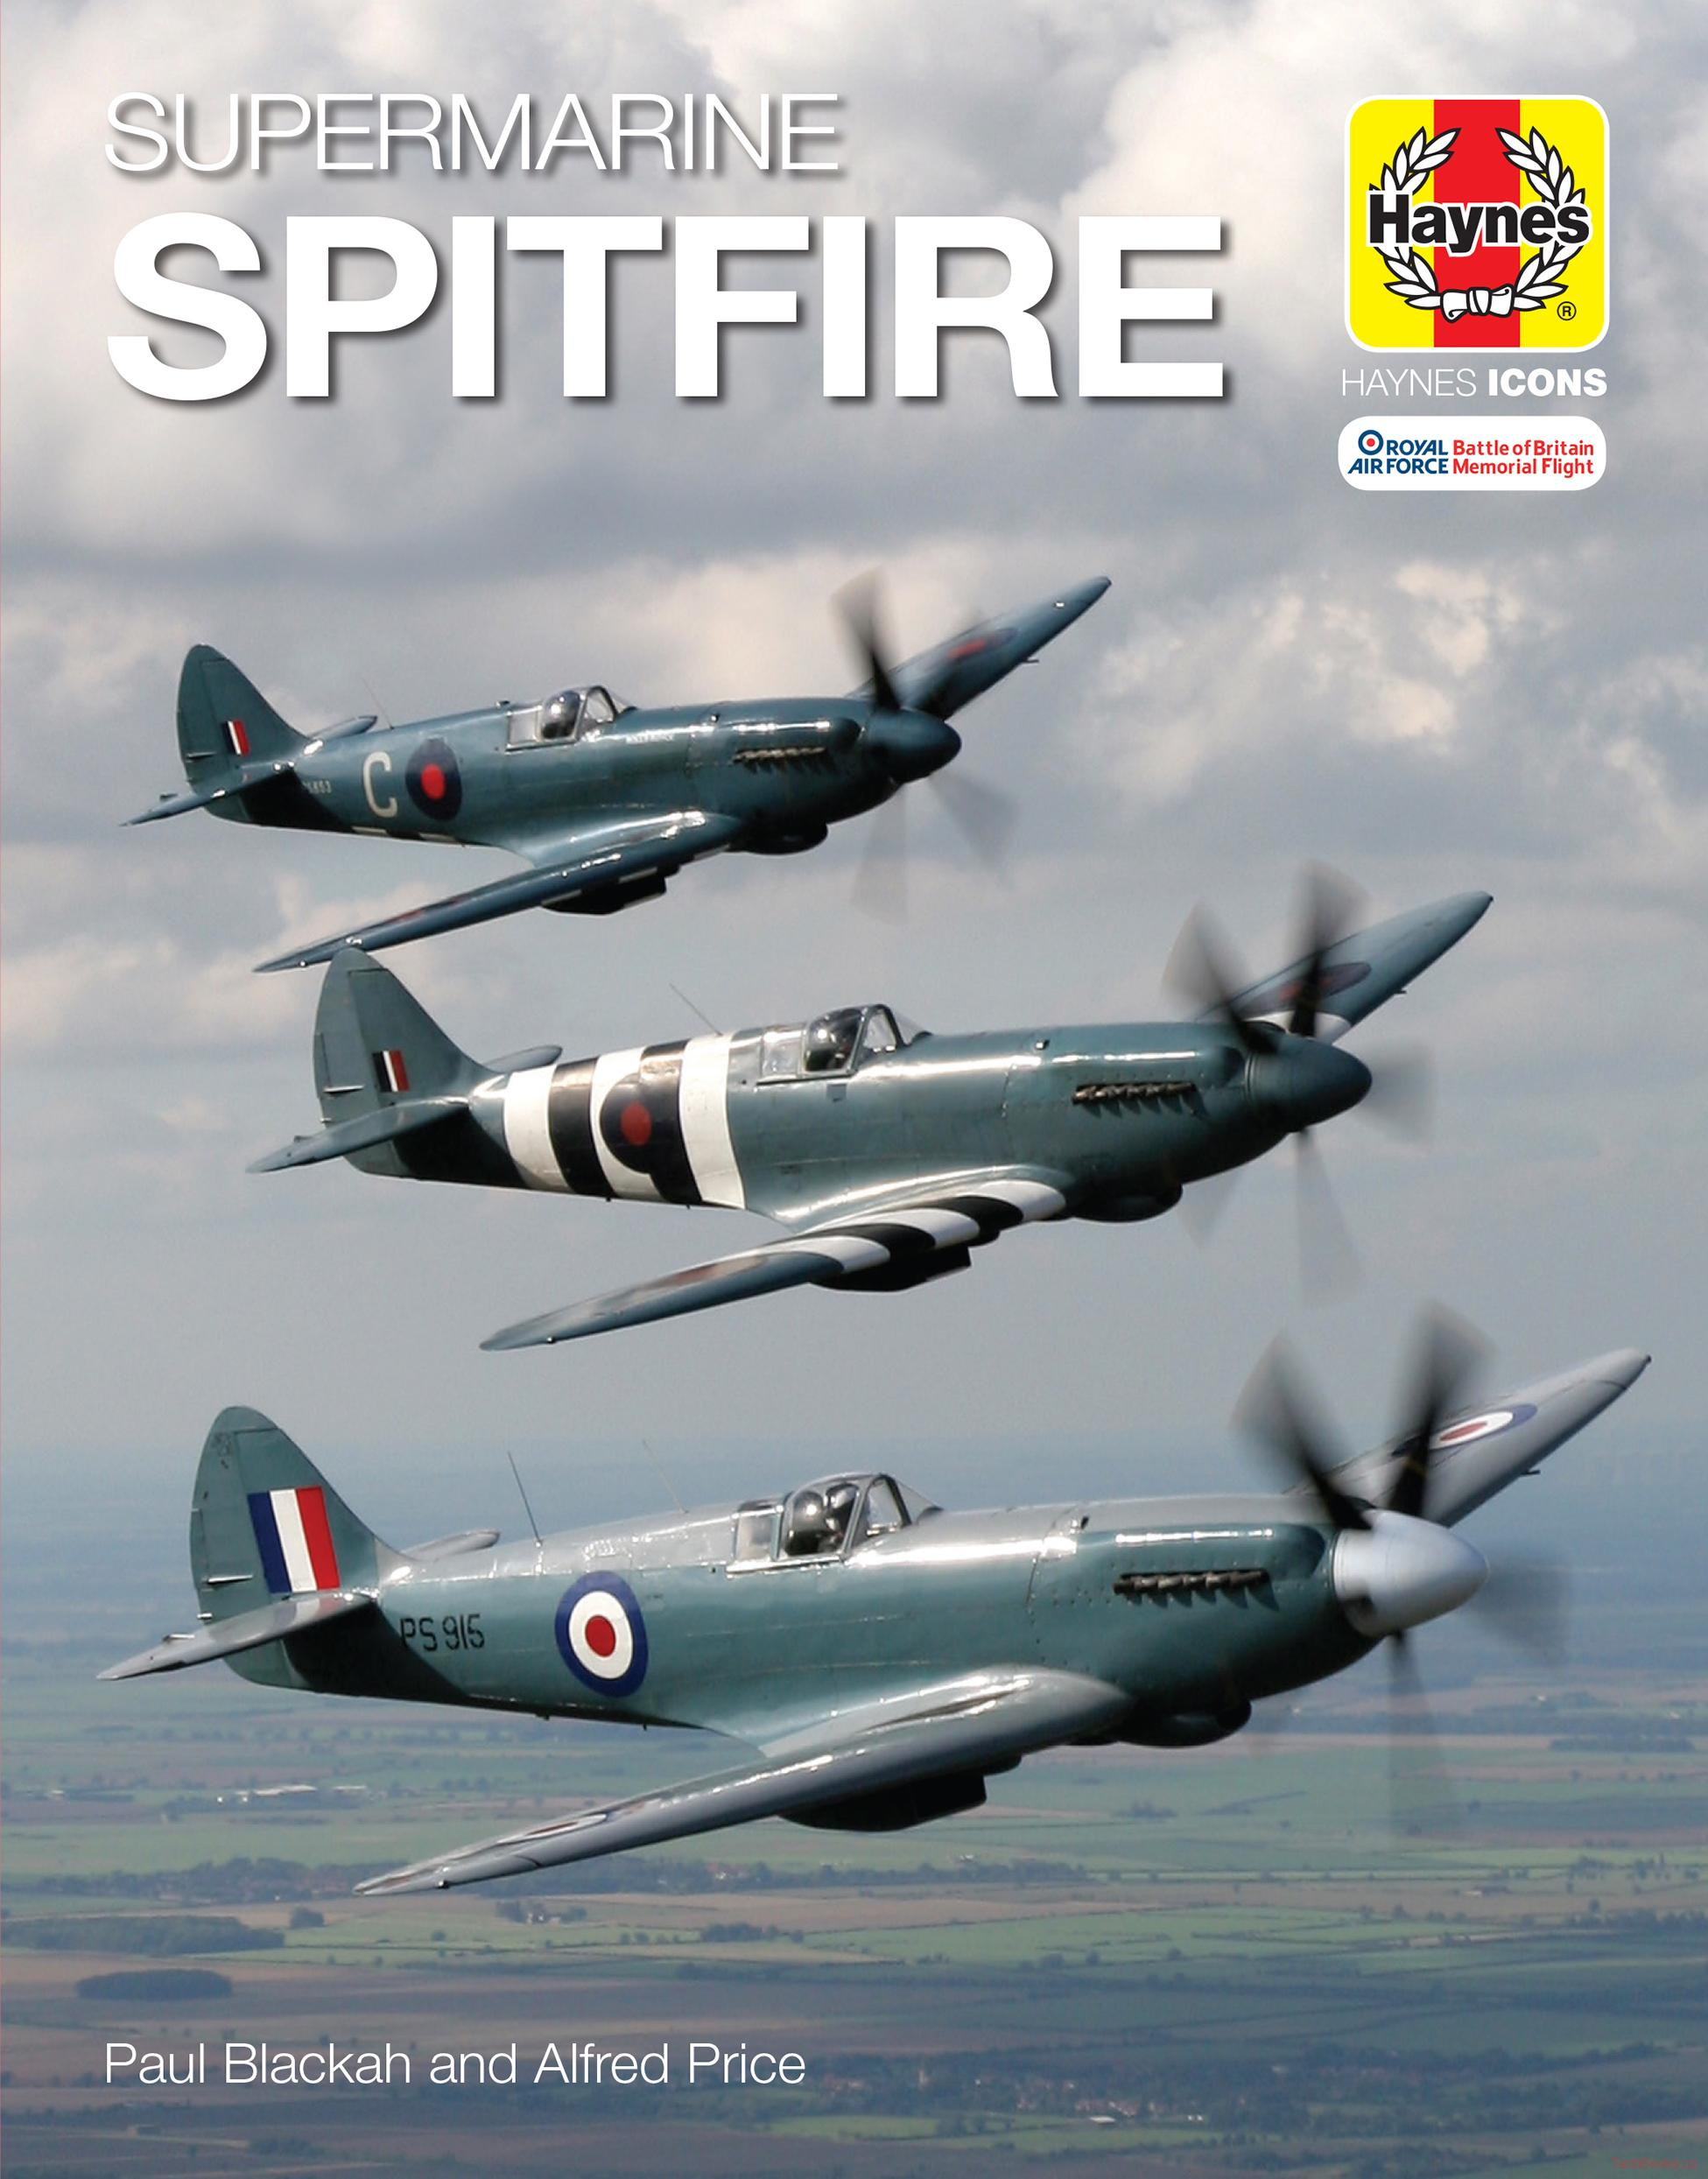 Supermarine Spitfire - Icon manual